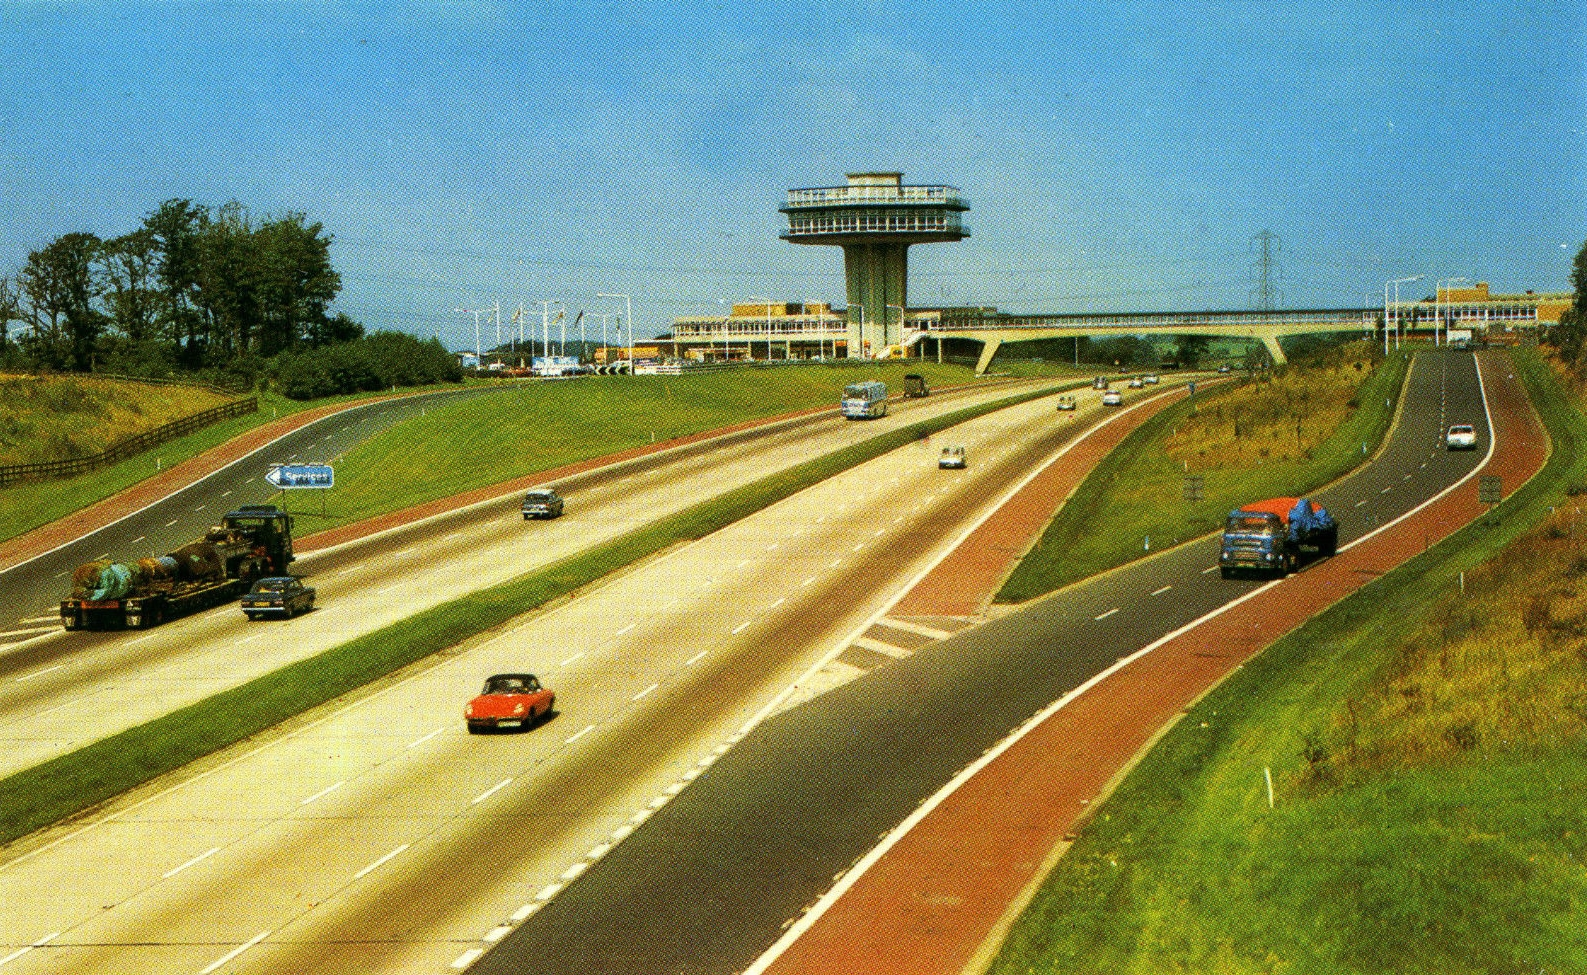 Forton_open_to_trade_postcard.jpg